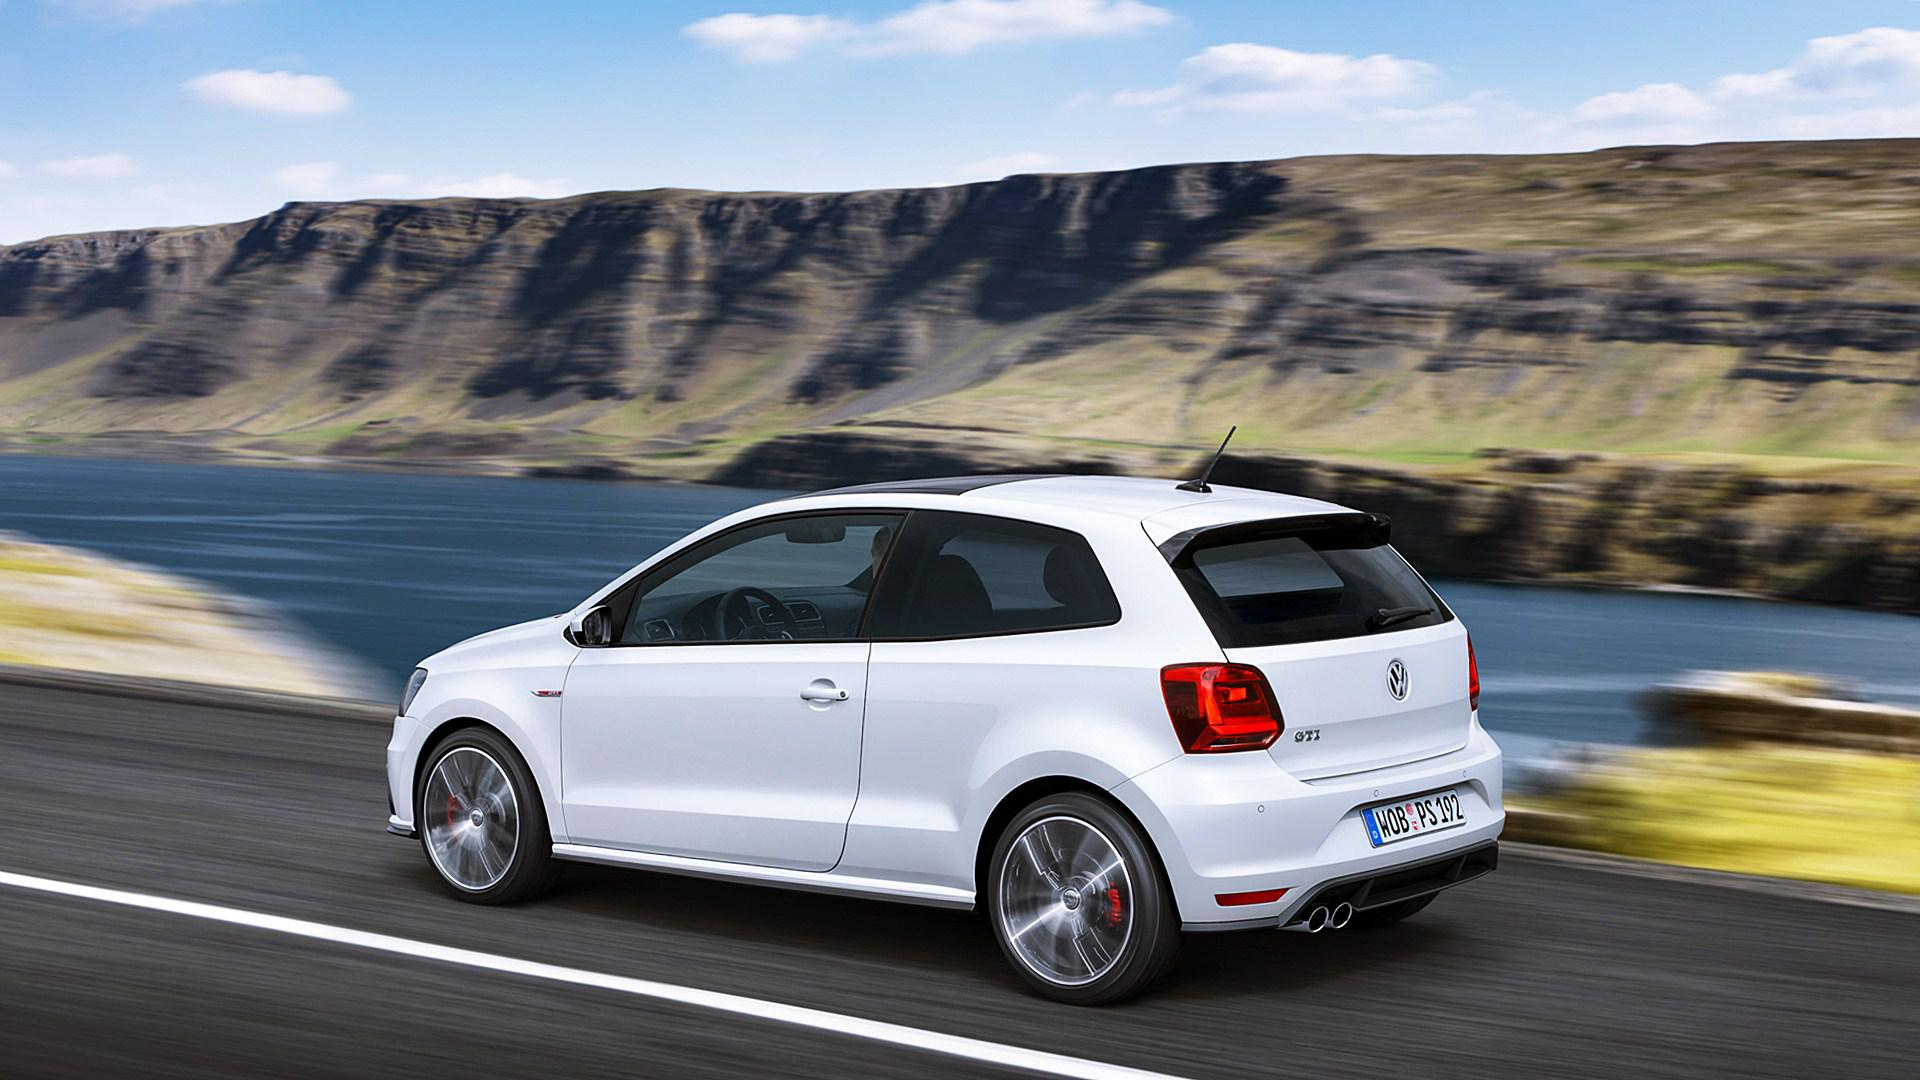 Cute Roses Wallpapers Download Hd Volkswagen Polo Gti White Back View Wallpaper